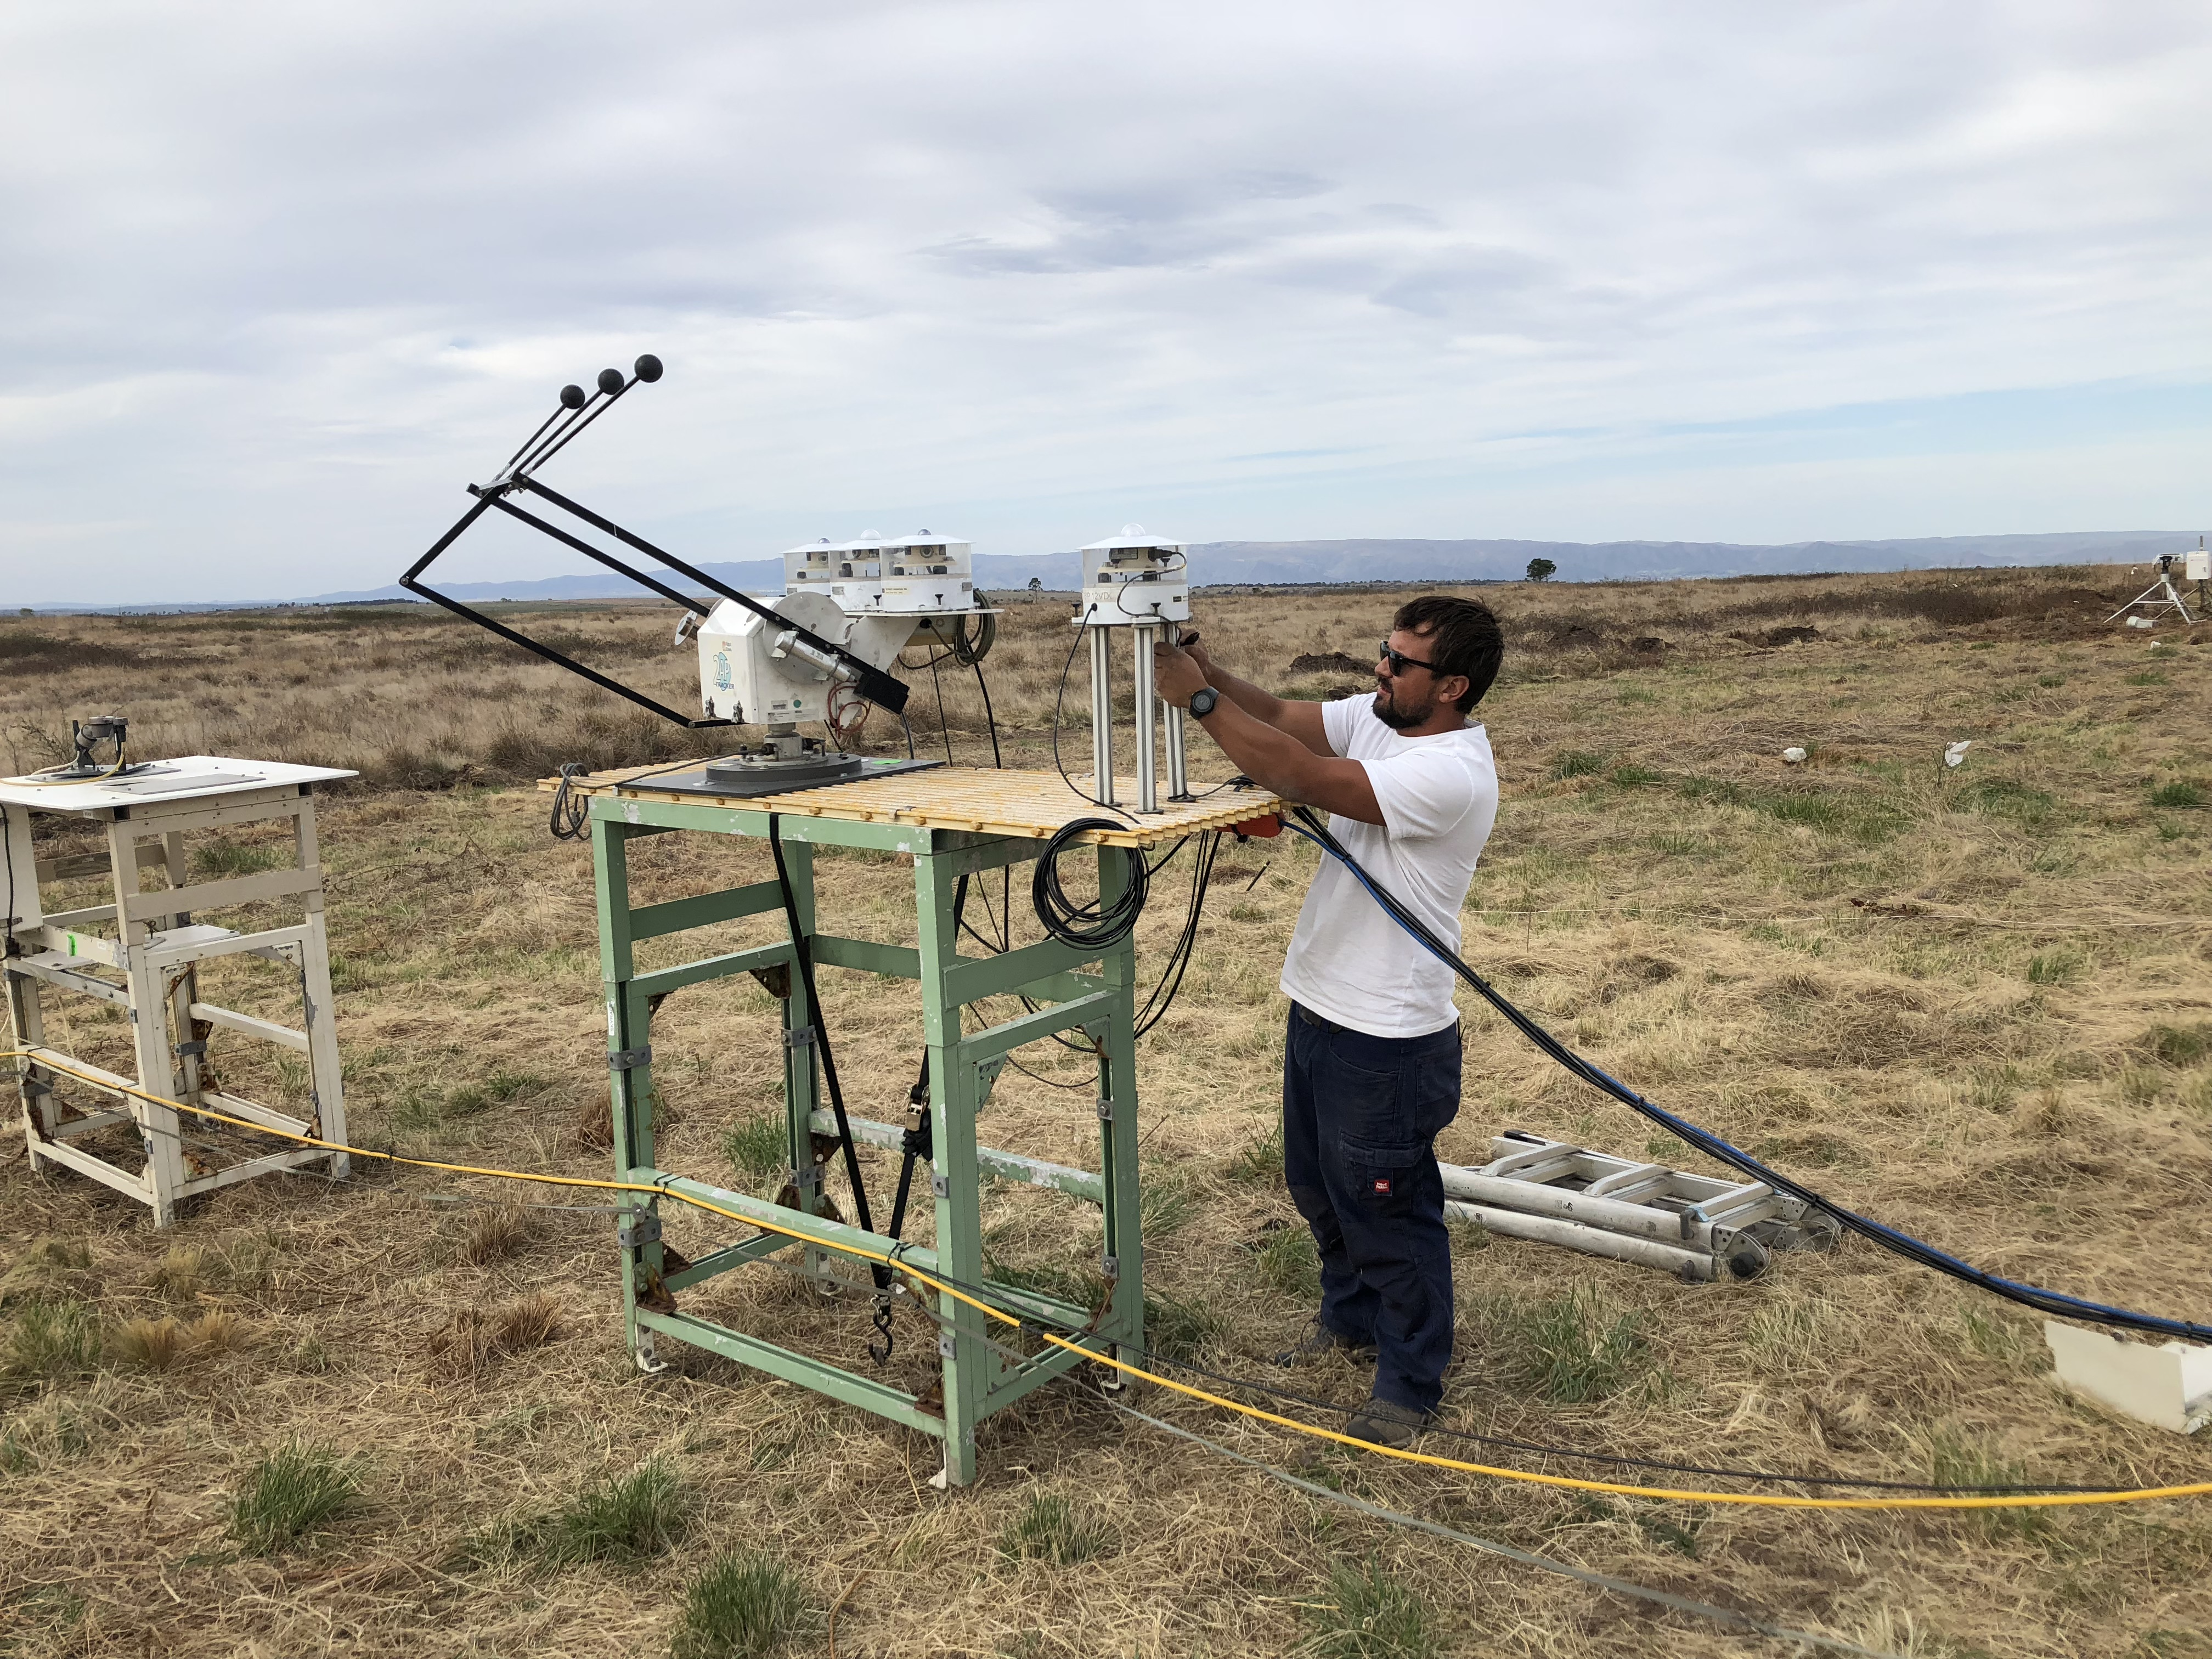 Technician works on ARM sky radiometers on stand for downwelling radiation in Argentina